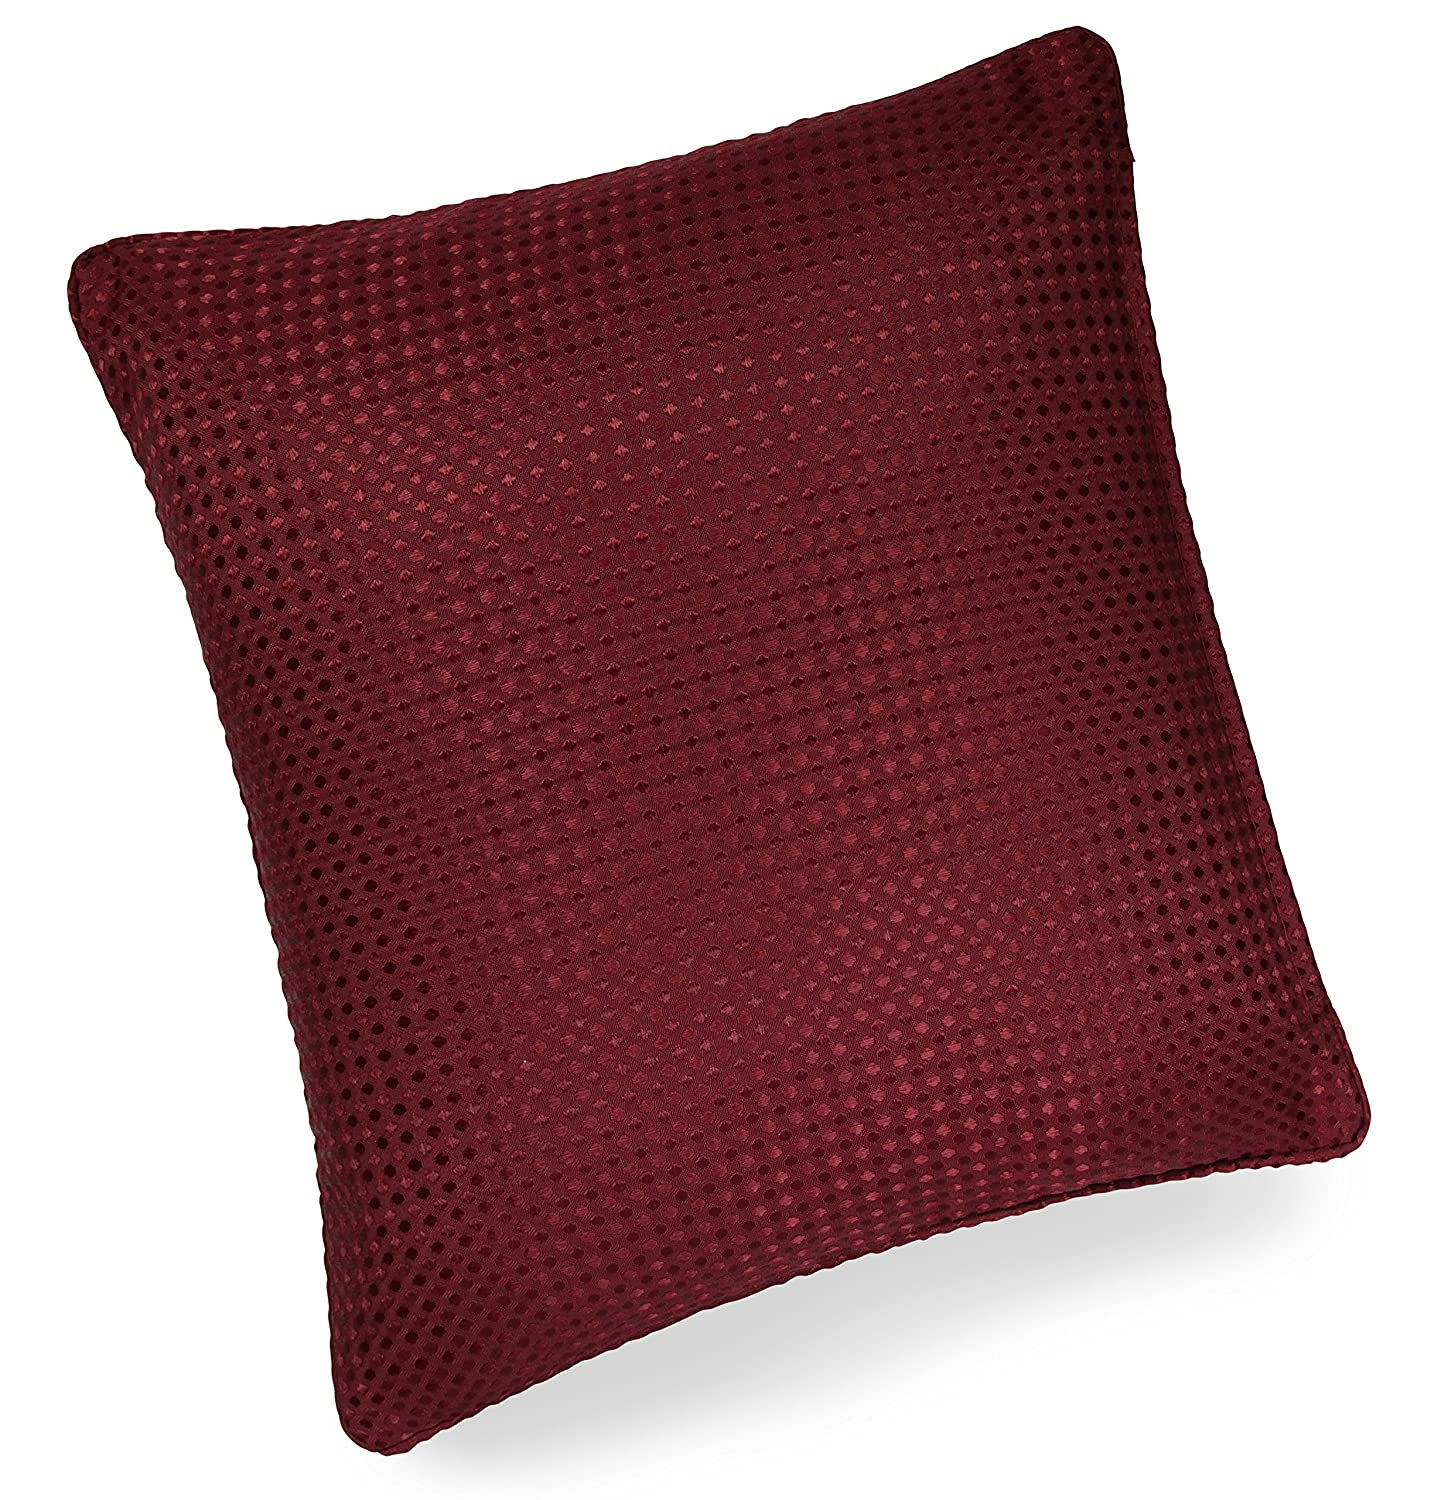 Impressions Waffle Red Piped 17in 43x43cm Cushion Cover Amazoncouk Kitchen Home